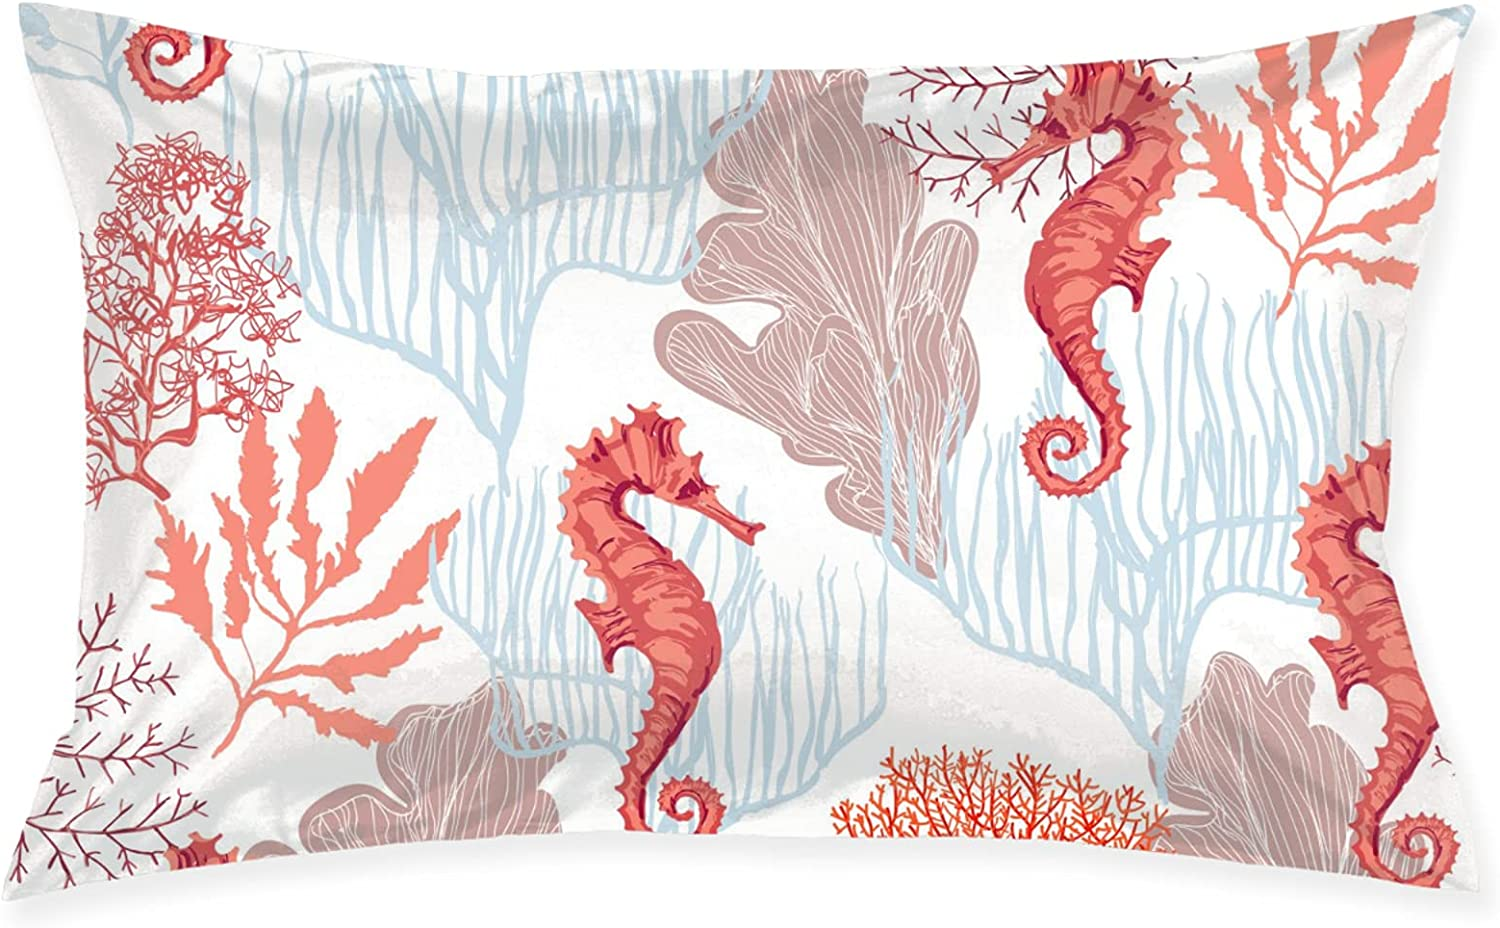 Raleigh Mall San Francisco Mall Red Corals and Sea Horses Sle Pillowcase Bed Pillows